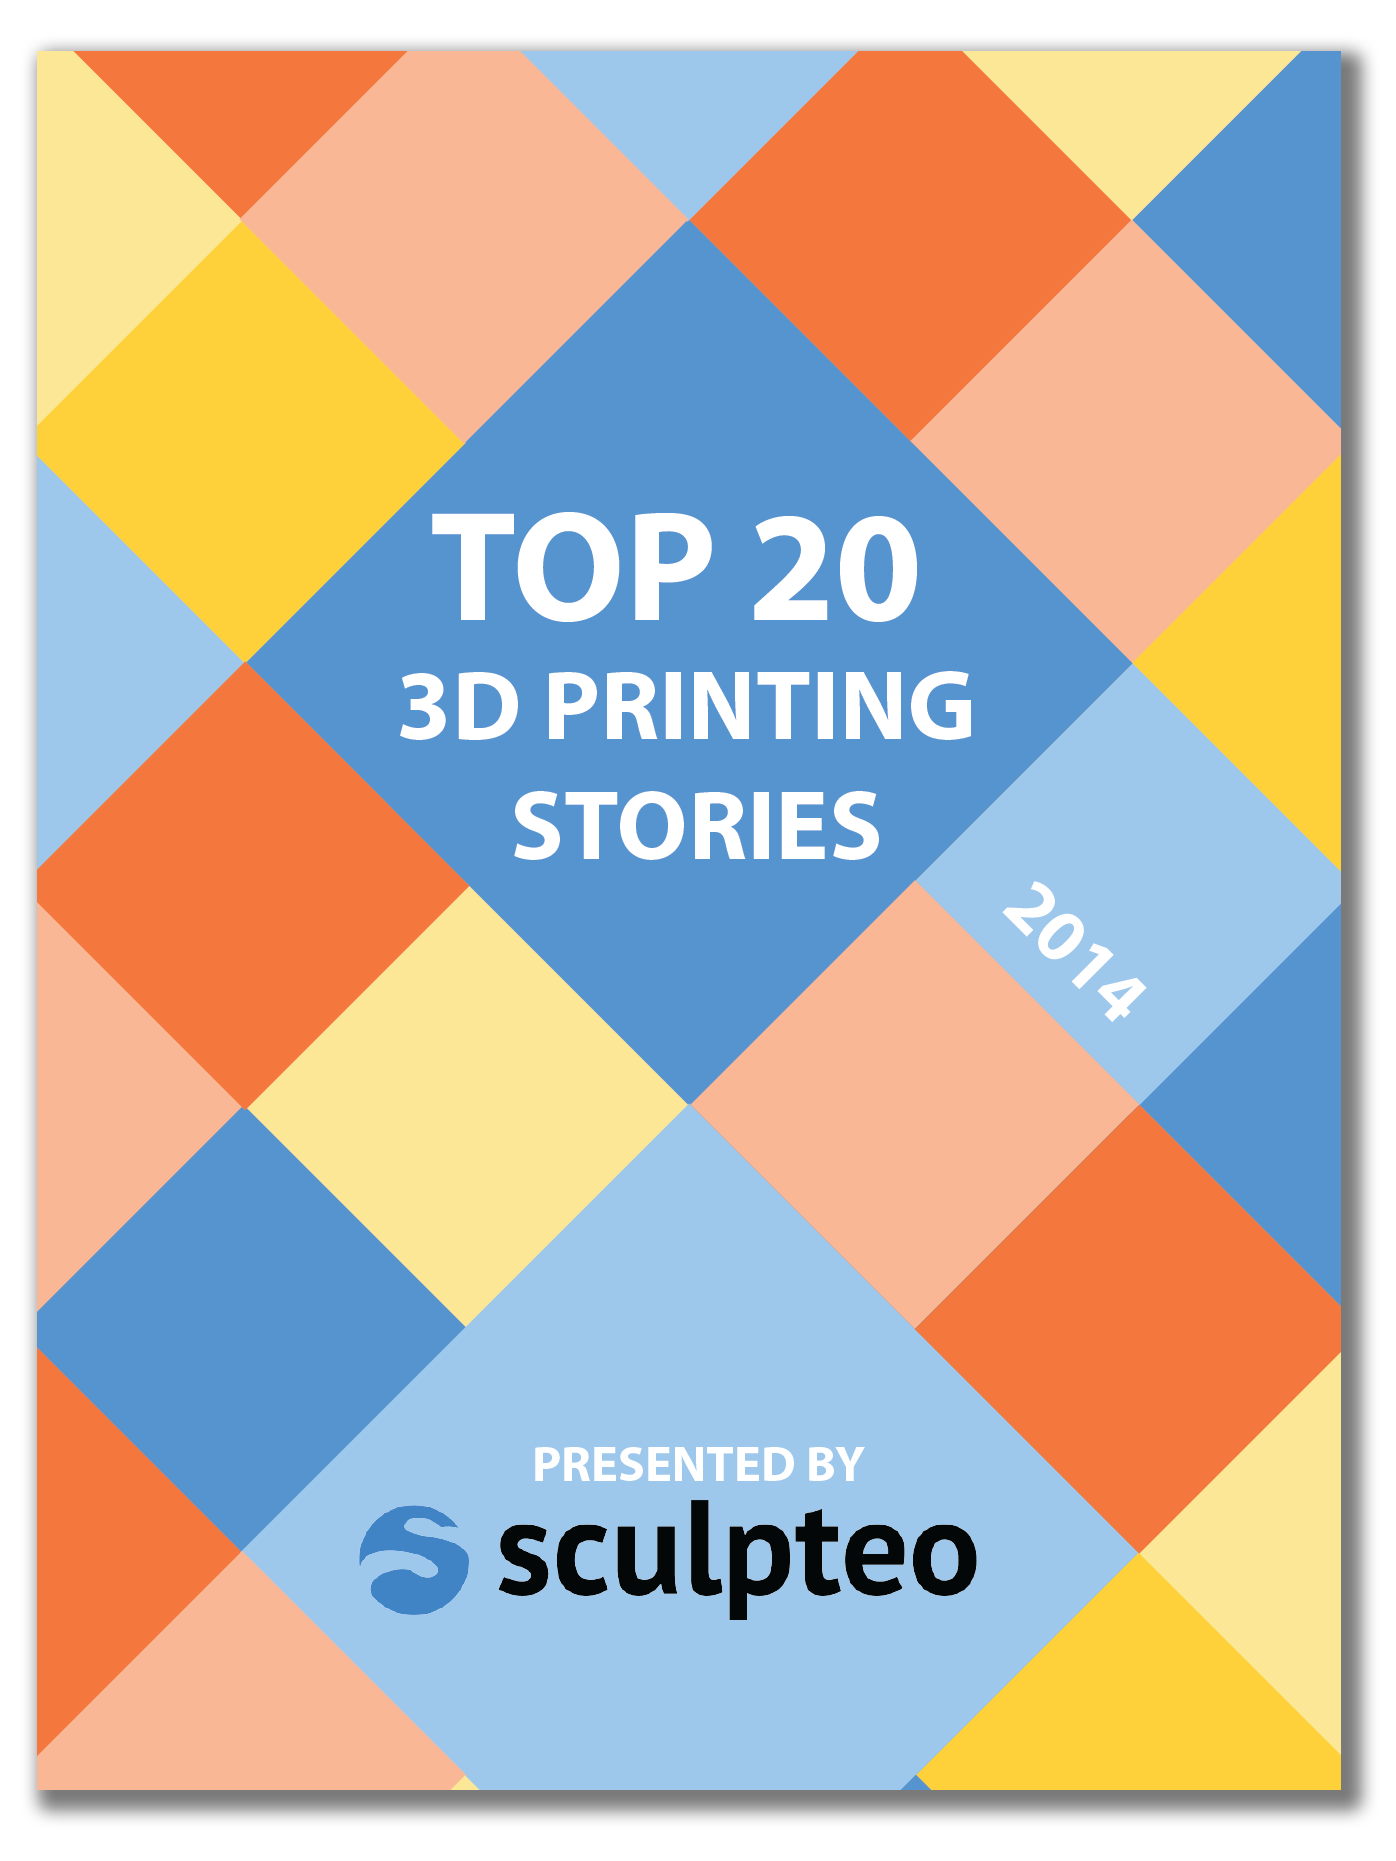 The Top 20 3D Printing Stories of 2014